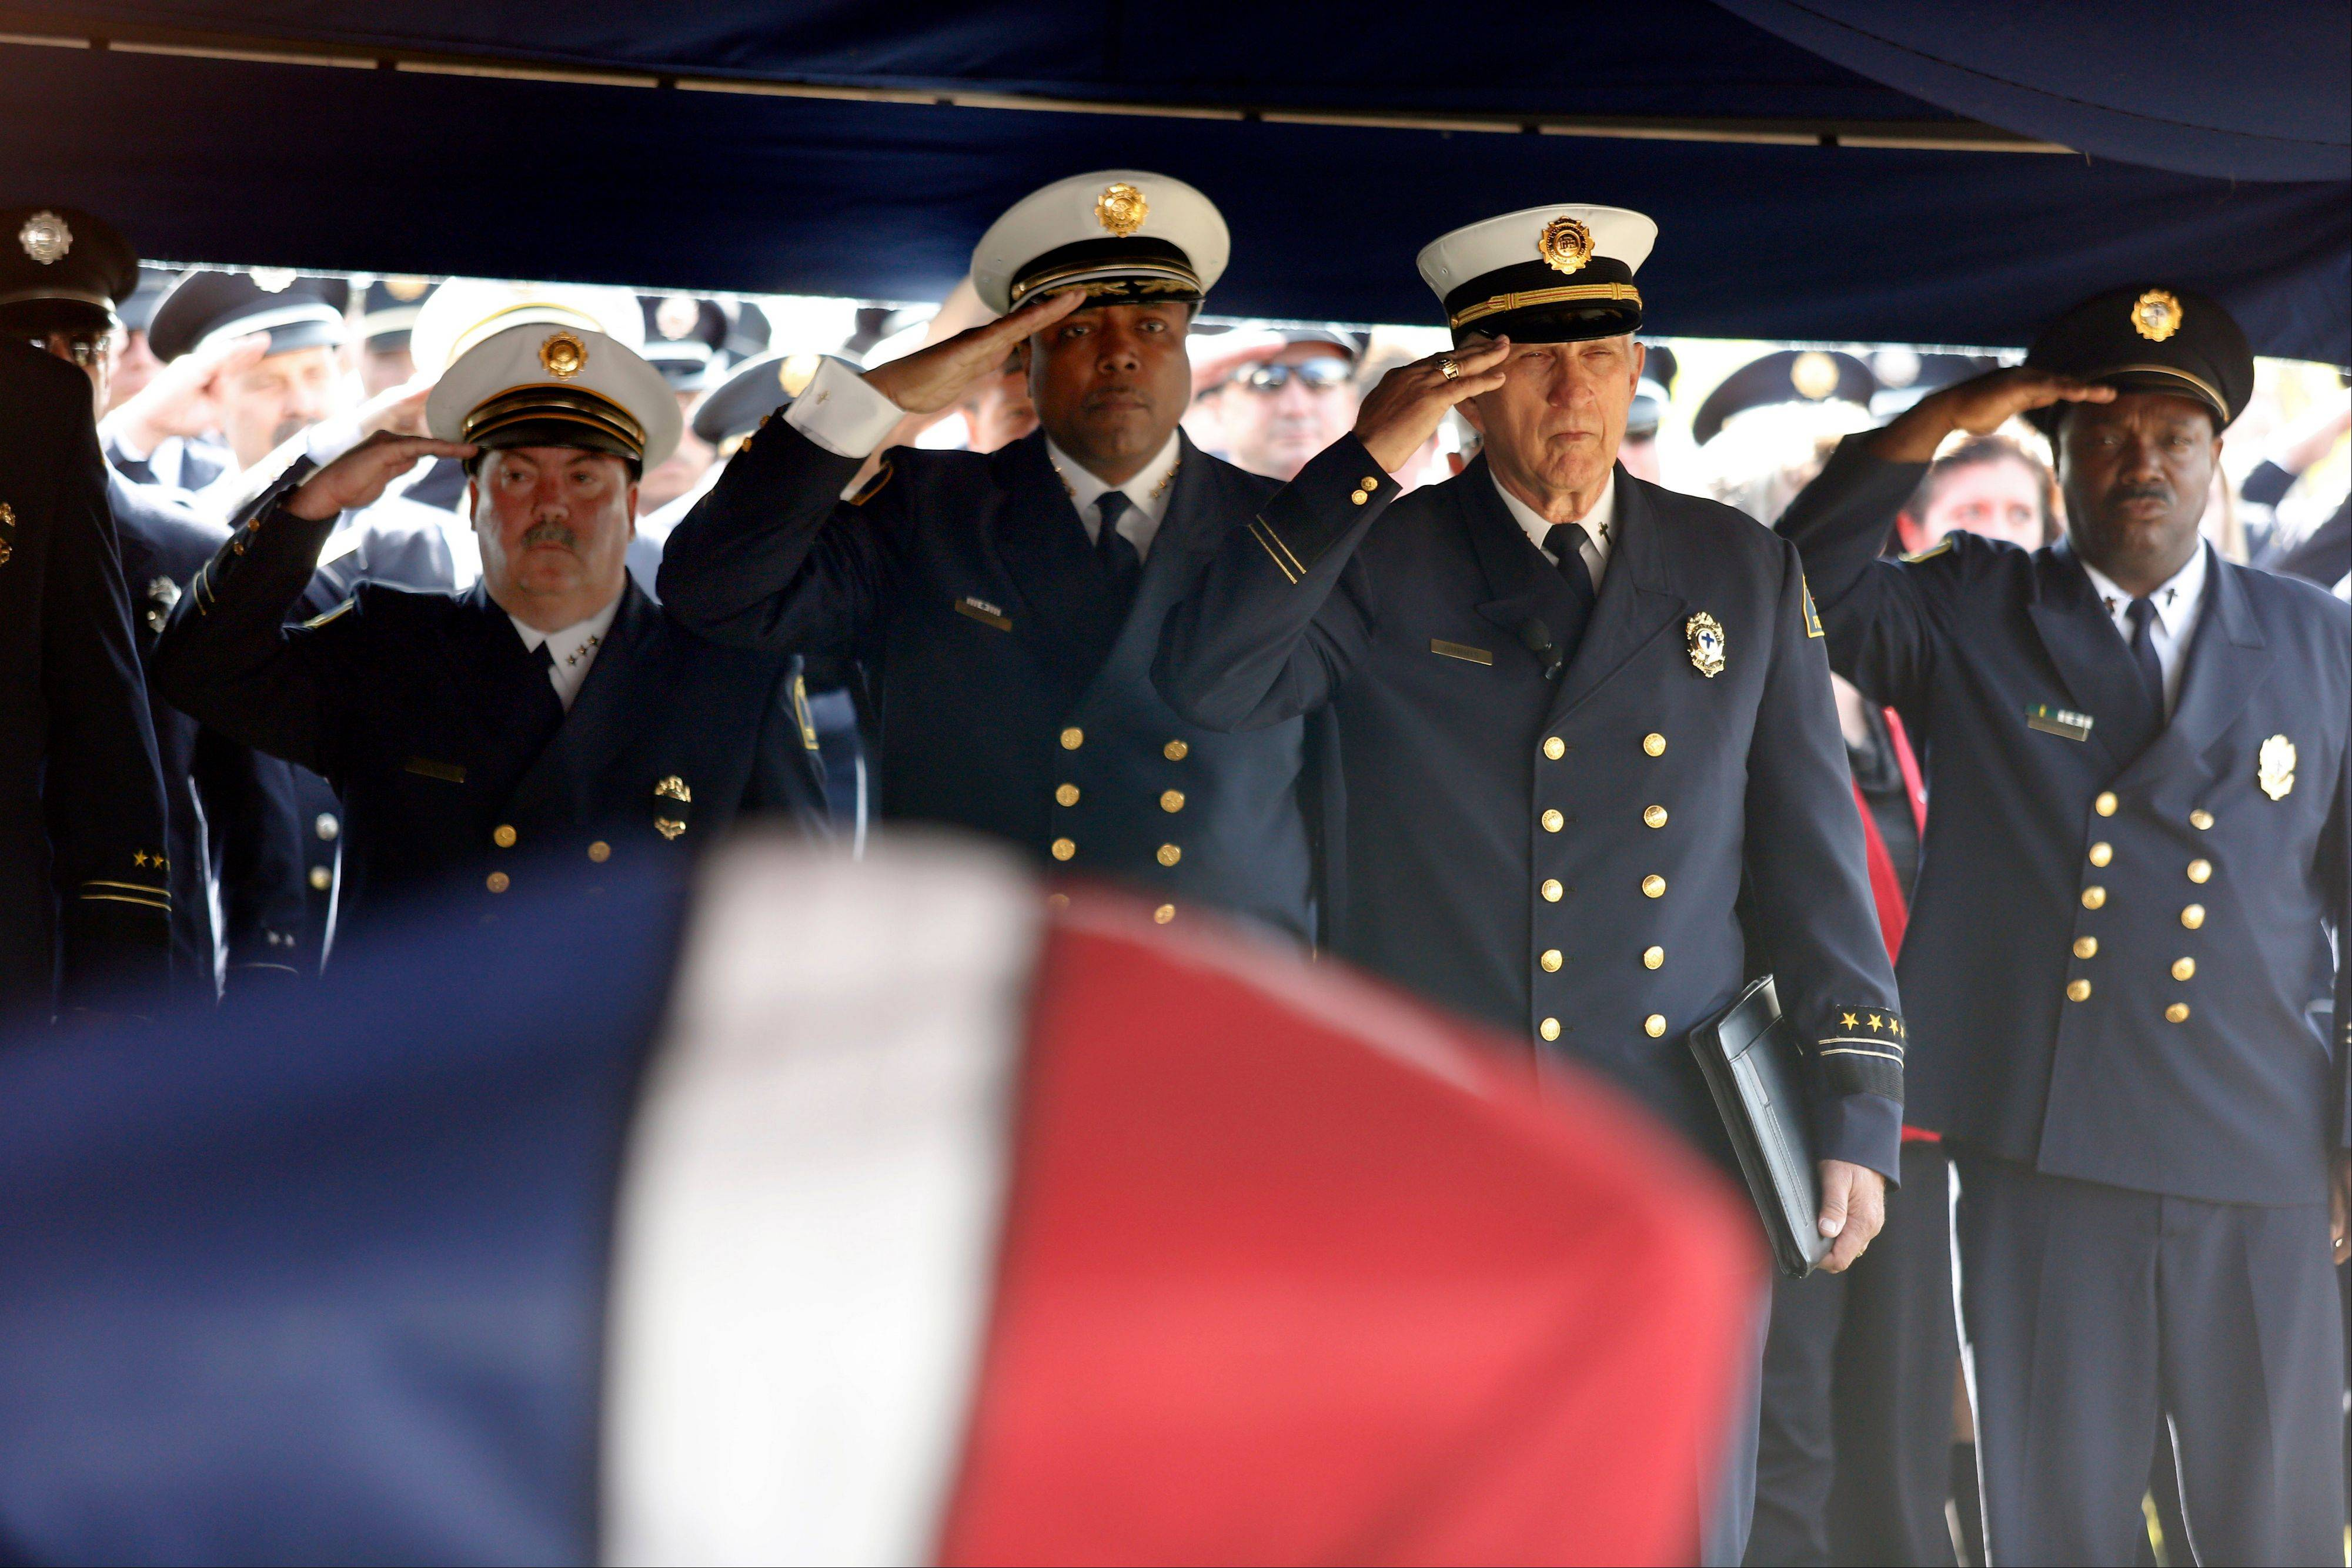 Dallas Fire-Rescue Chief Louie Bright, III, second left, and retired Dallas Fire Department Chaplain Denny Burris, second right, salute the casket of Dallas Fire-Rescue Captain Kenneth �Luckey� Harris, Jr. during his funeral at the Bold Springs Cemetery in West, Texas, on Wednesday April 24, 2013. Harris was killed in the West Fertilizer Co. plant explosion on April 17.